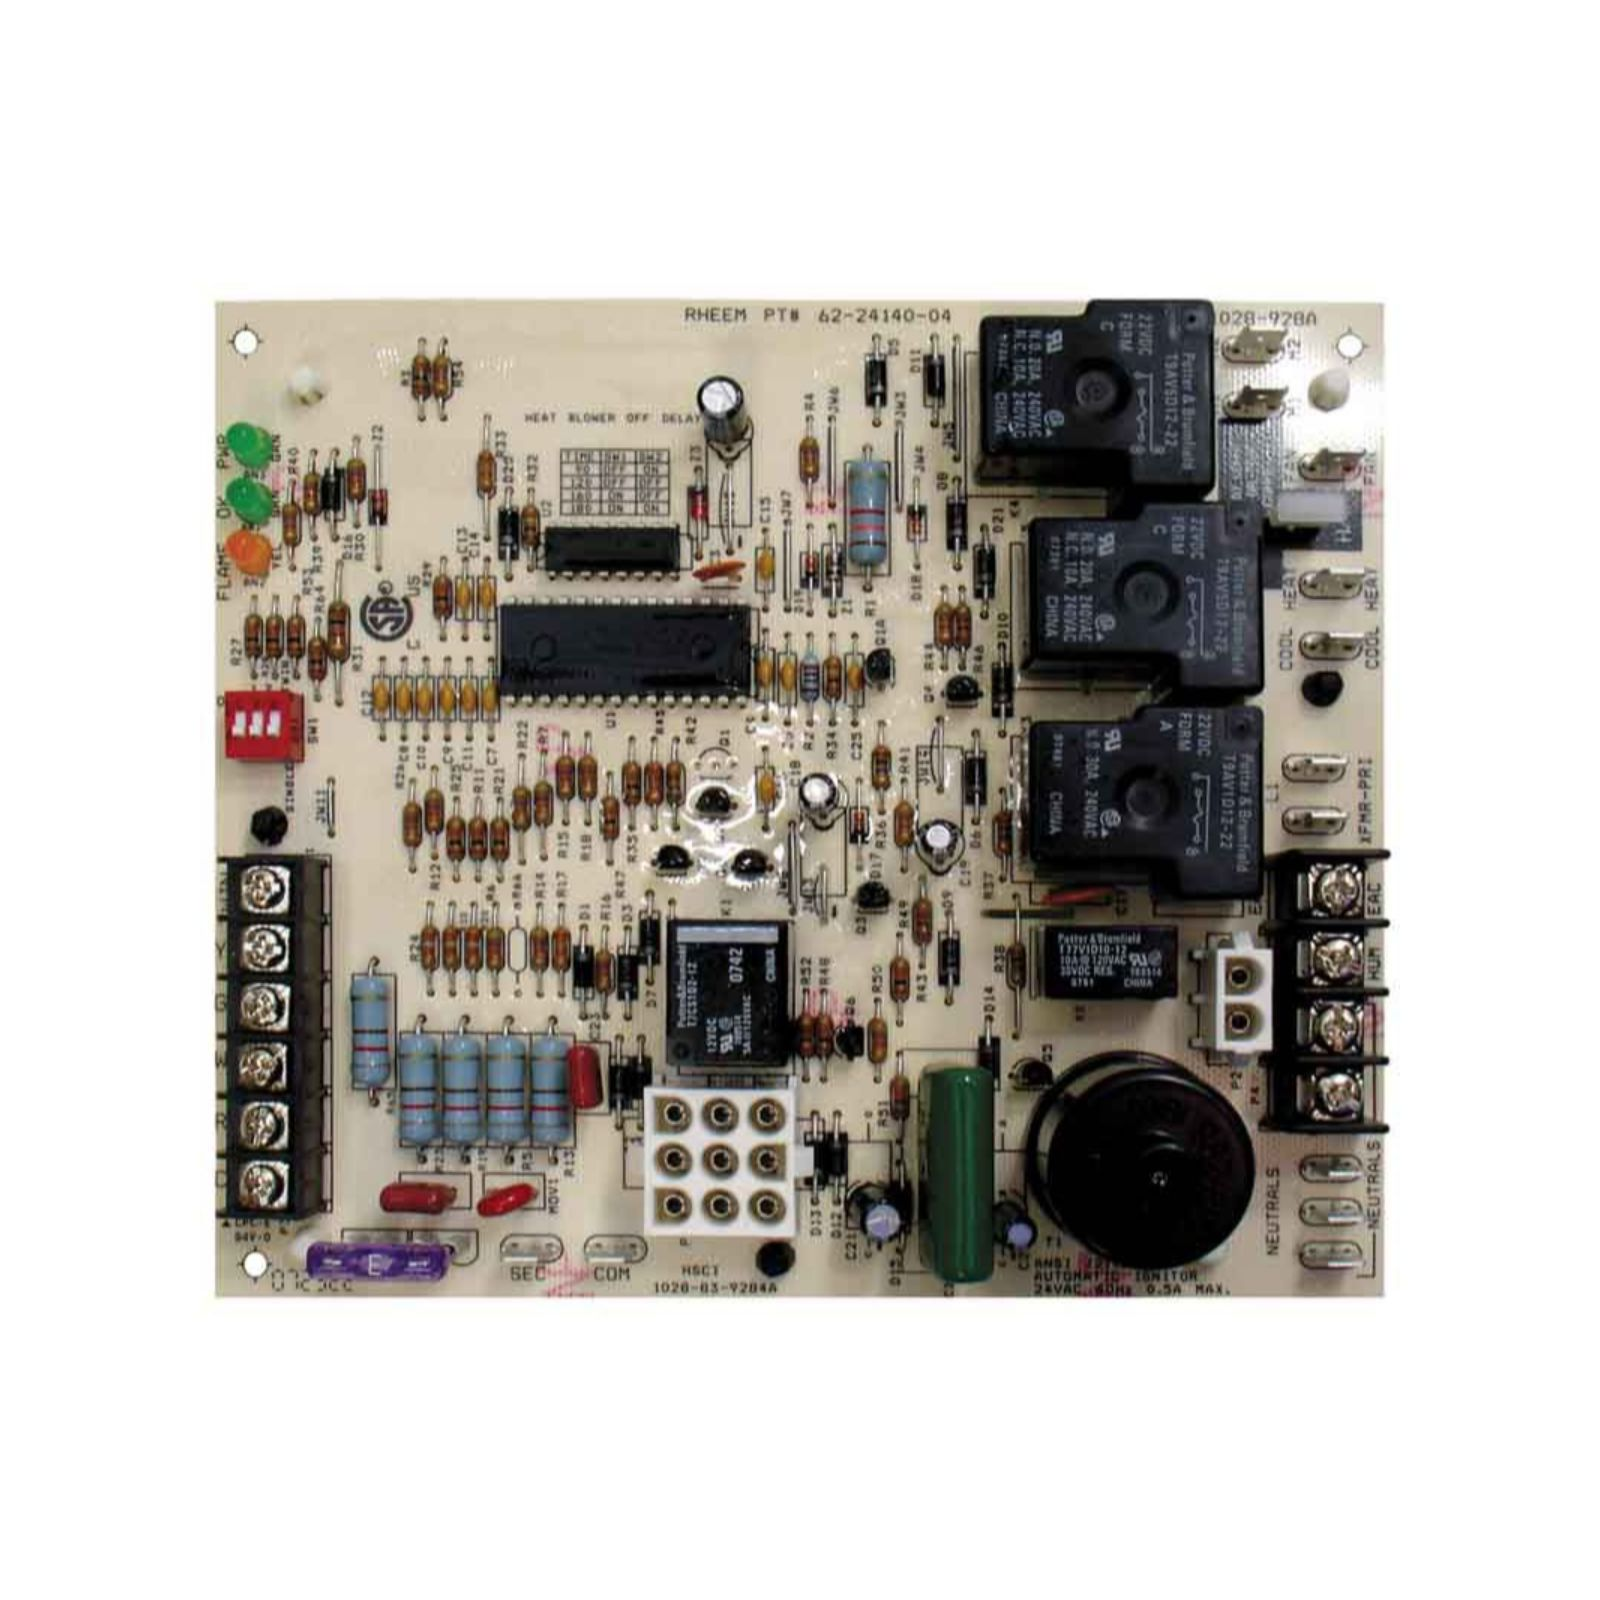 PROTECH 62-24140-04 - Integrated Furnace Control Board (IFC), Gas Codes EJ, EL, FY